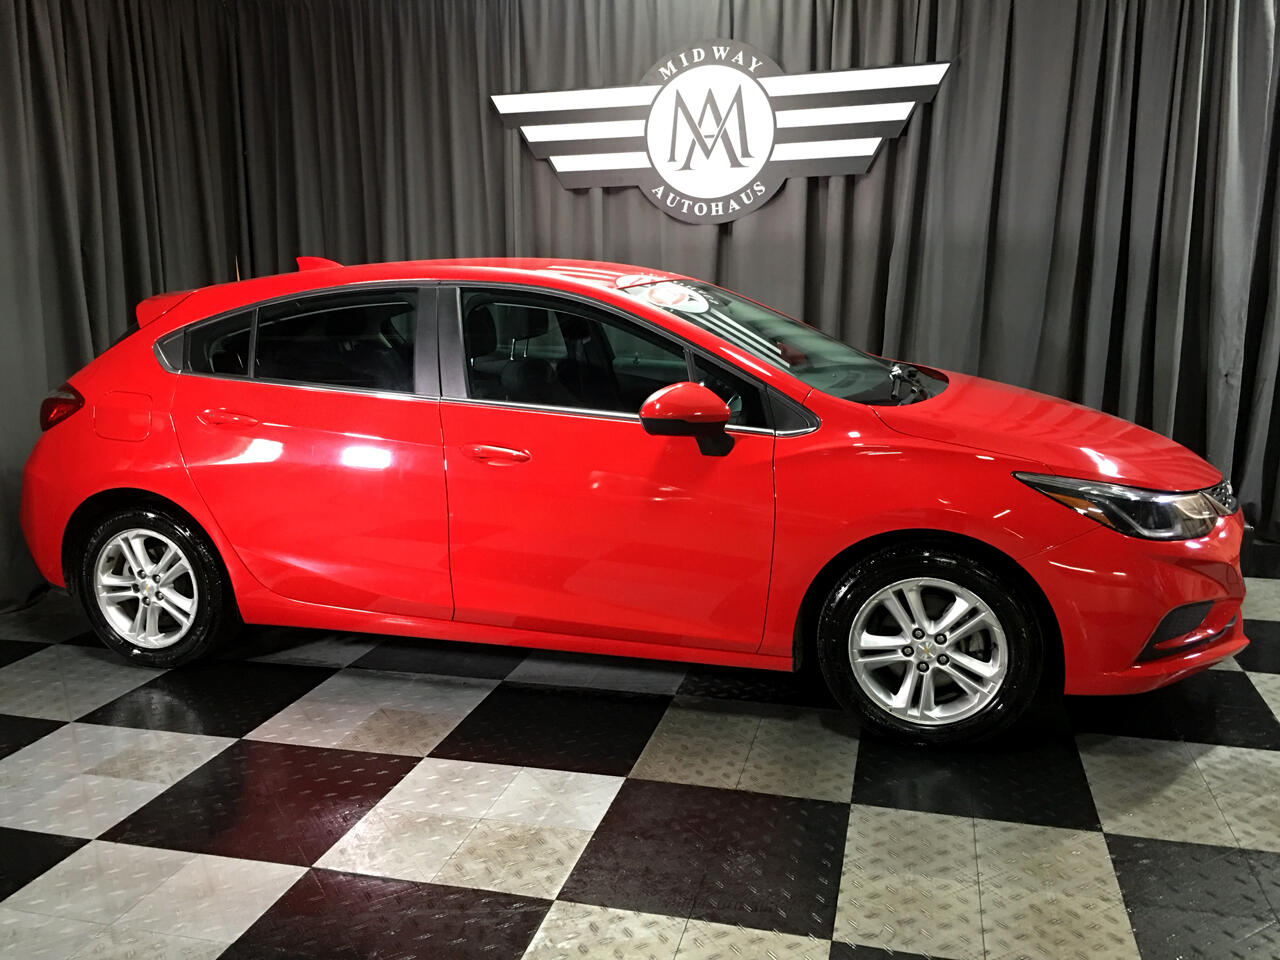 Pre-Owned 2017 Chevrolet Cruze 4dr HB 1.4L LT w/1SD